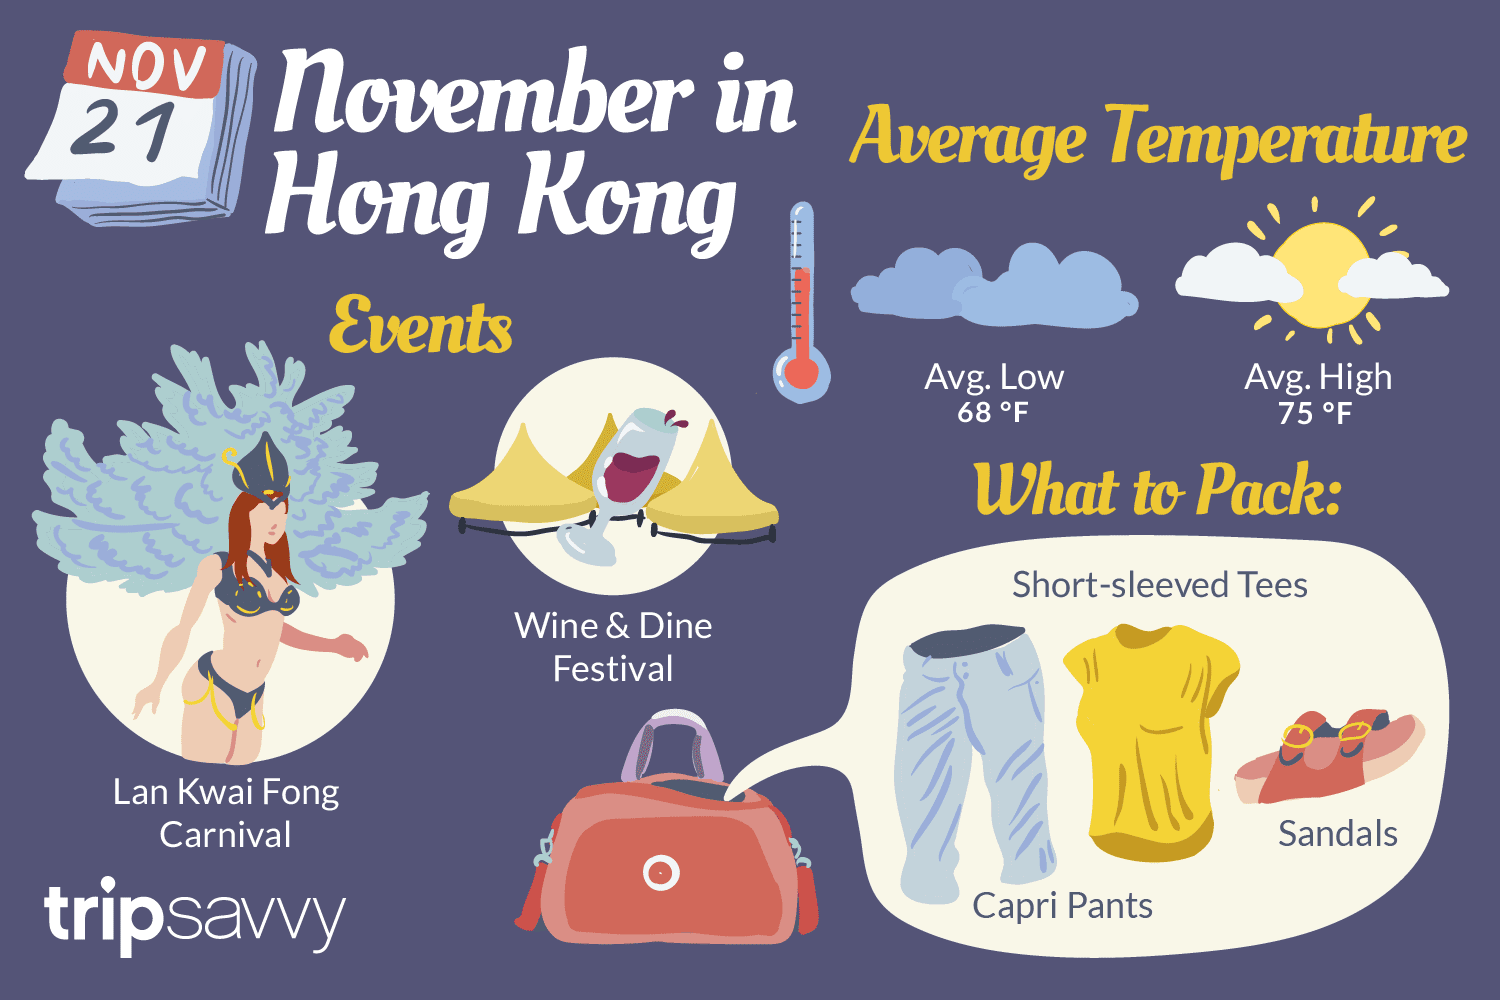 November in Hong Kong: What to Expect